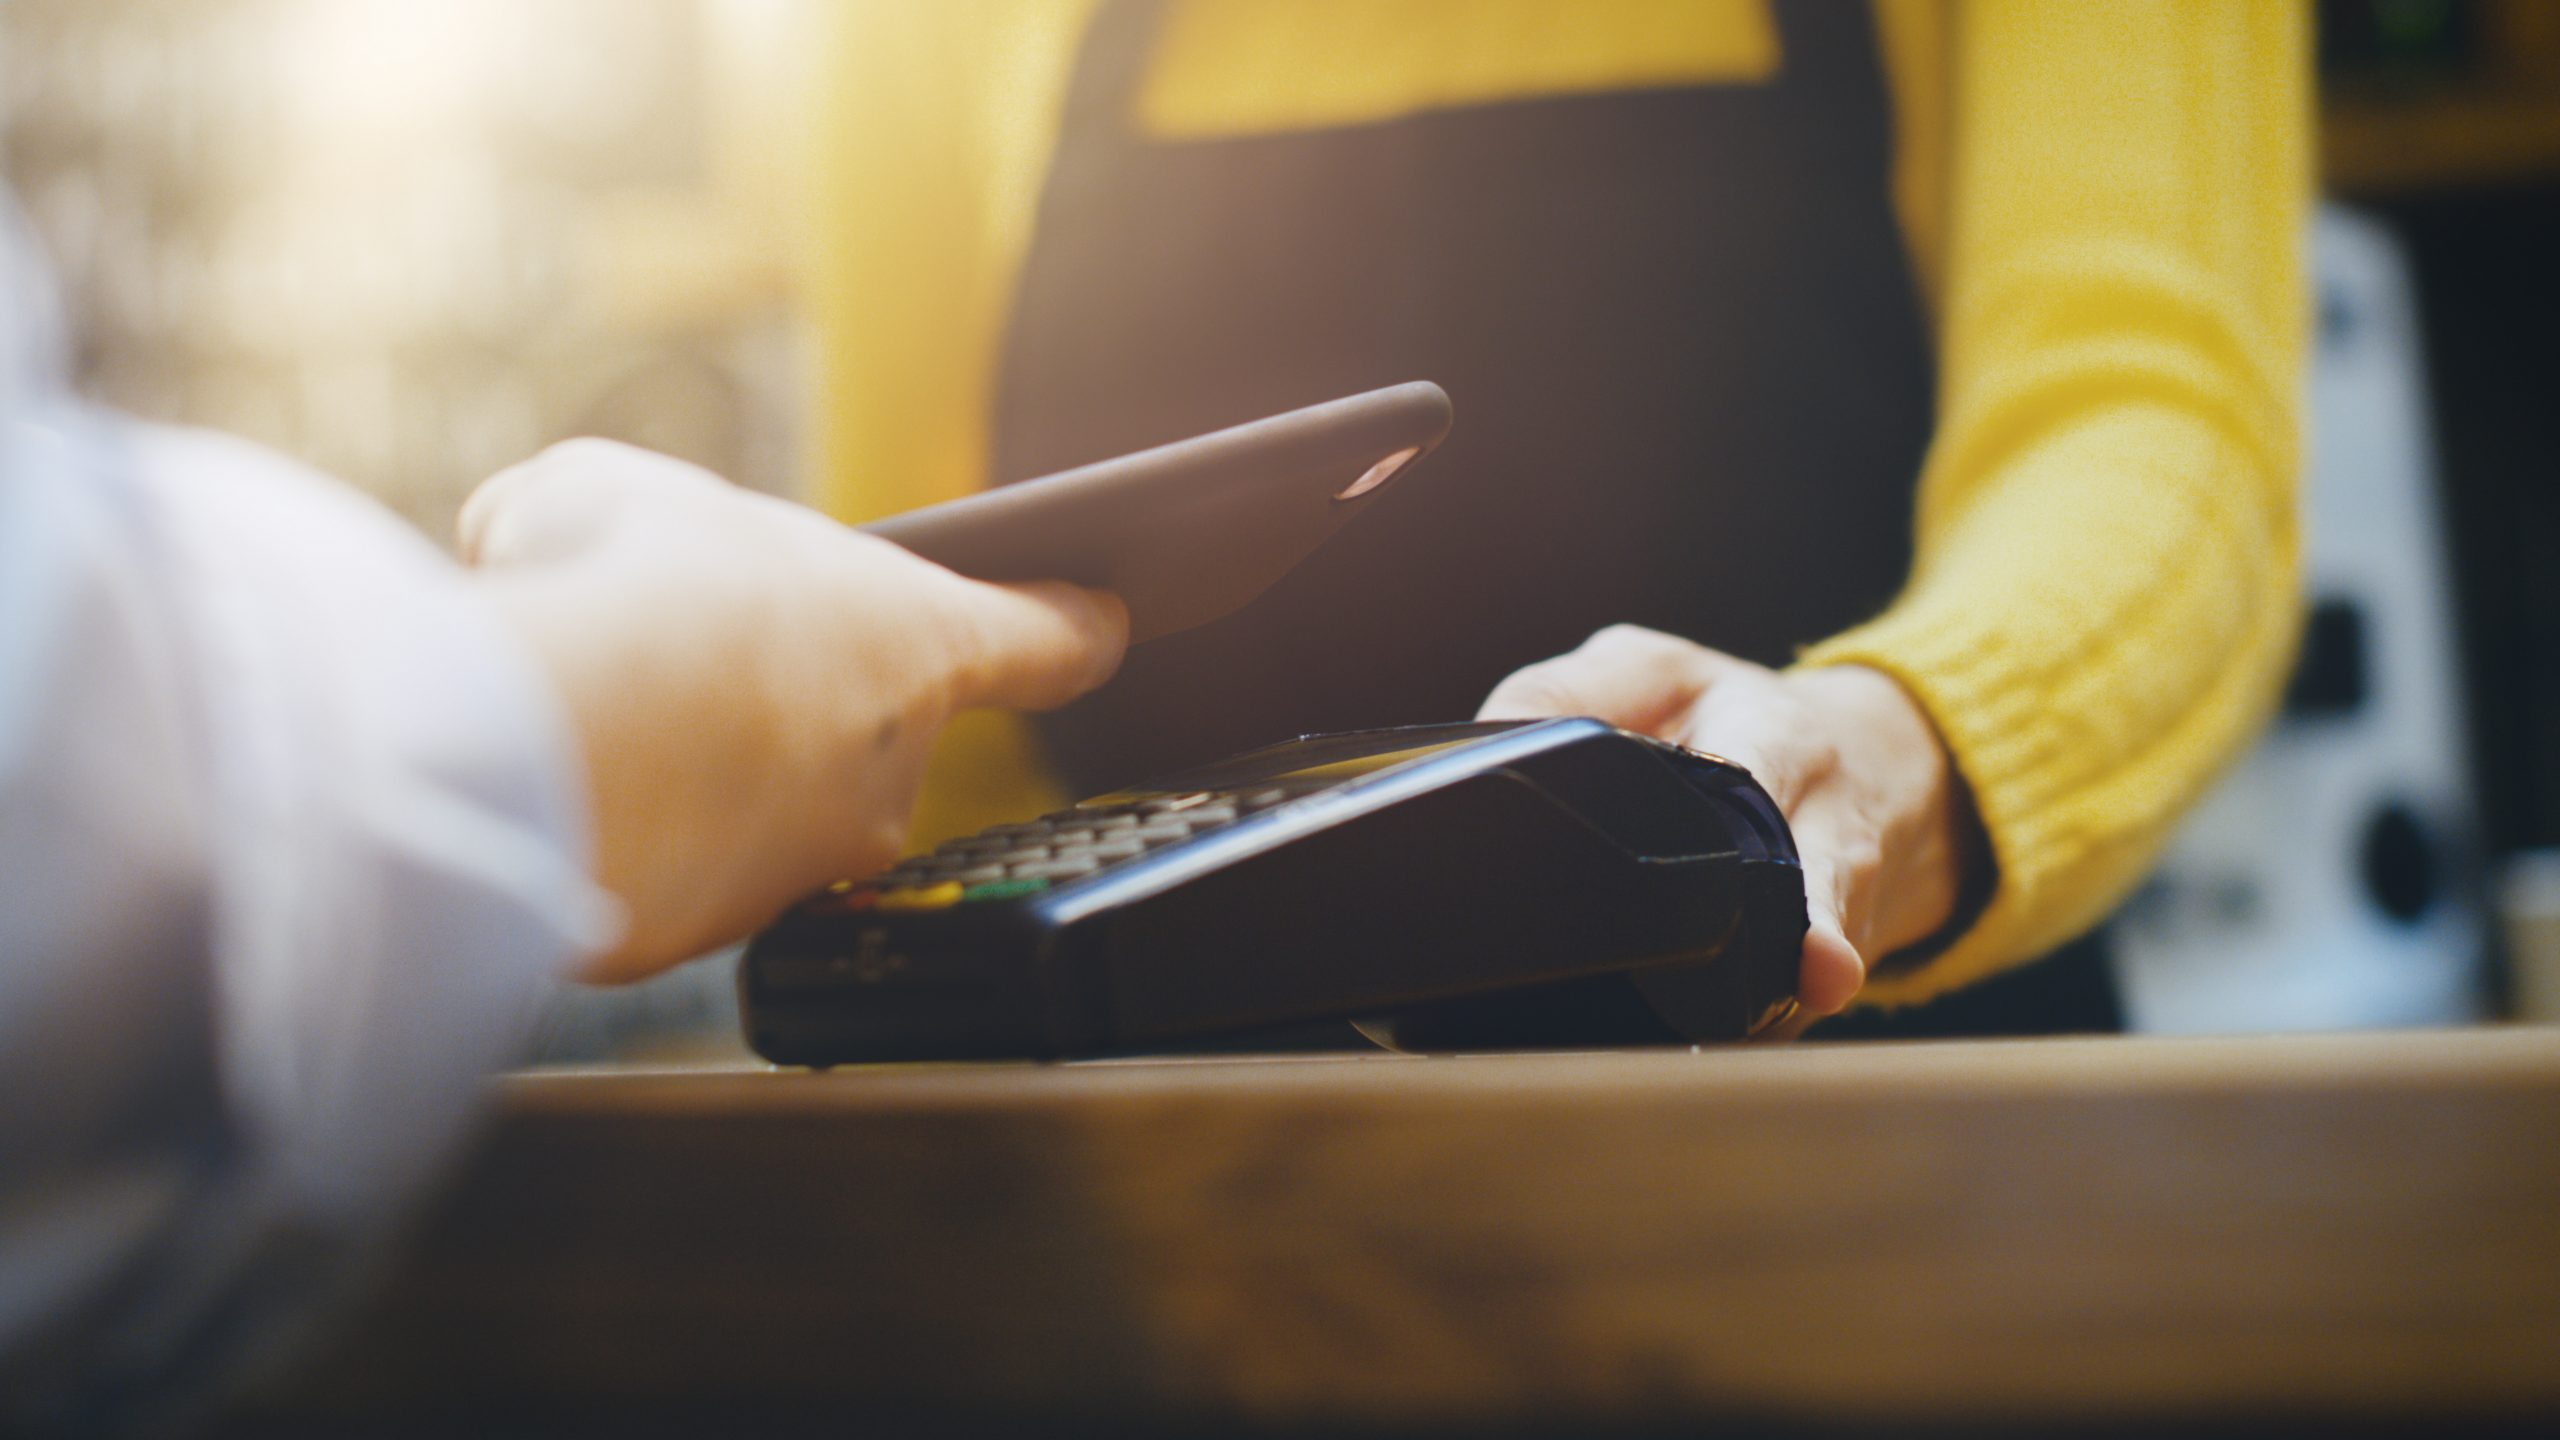 Mobile payments are surging, especially among Baby Boomers